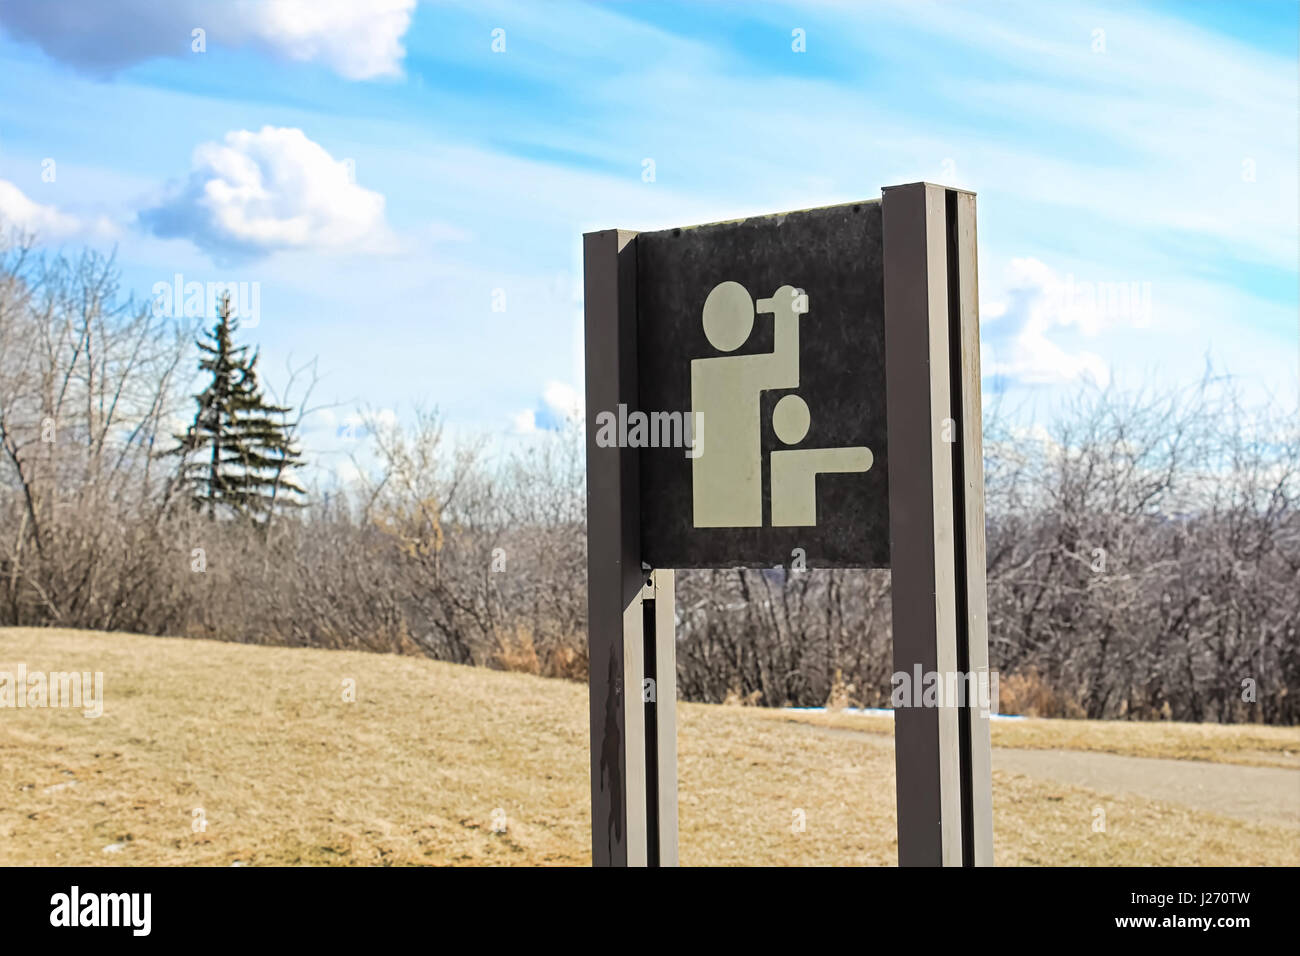 A viewpoint sign on the edge of a hiking trail. - Stock Image